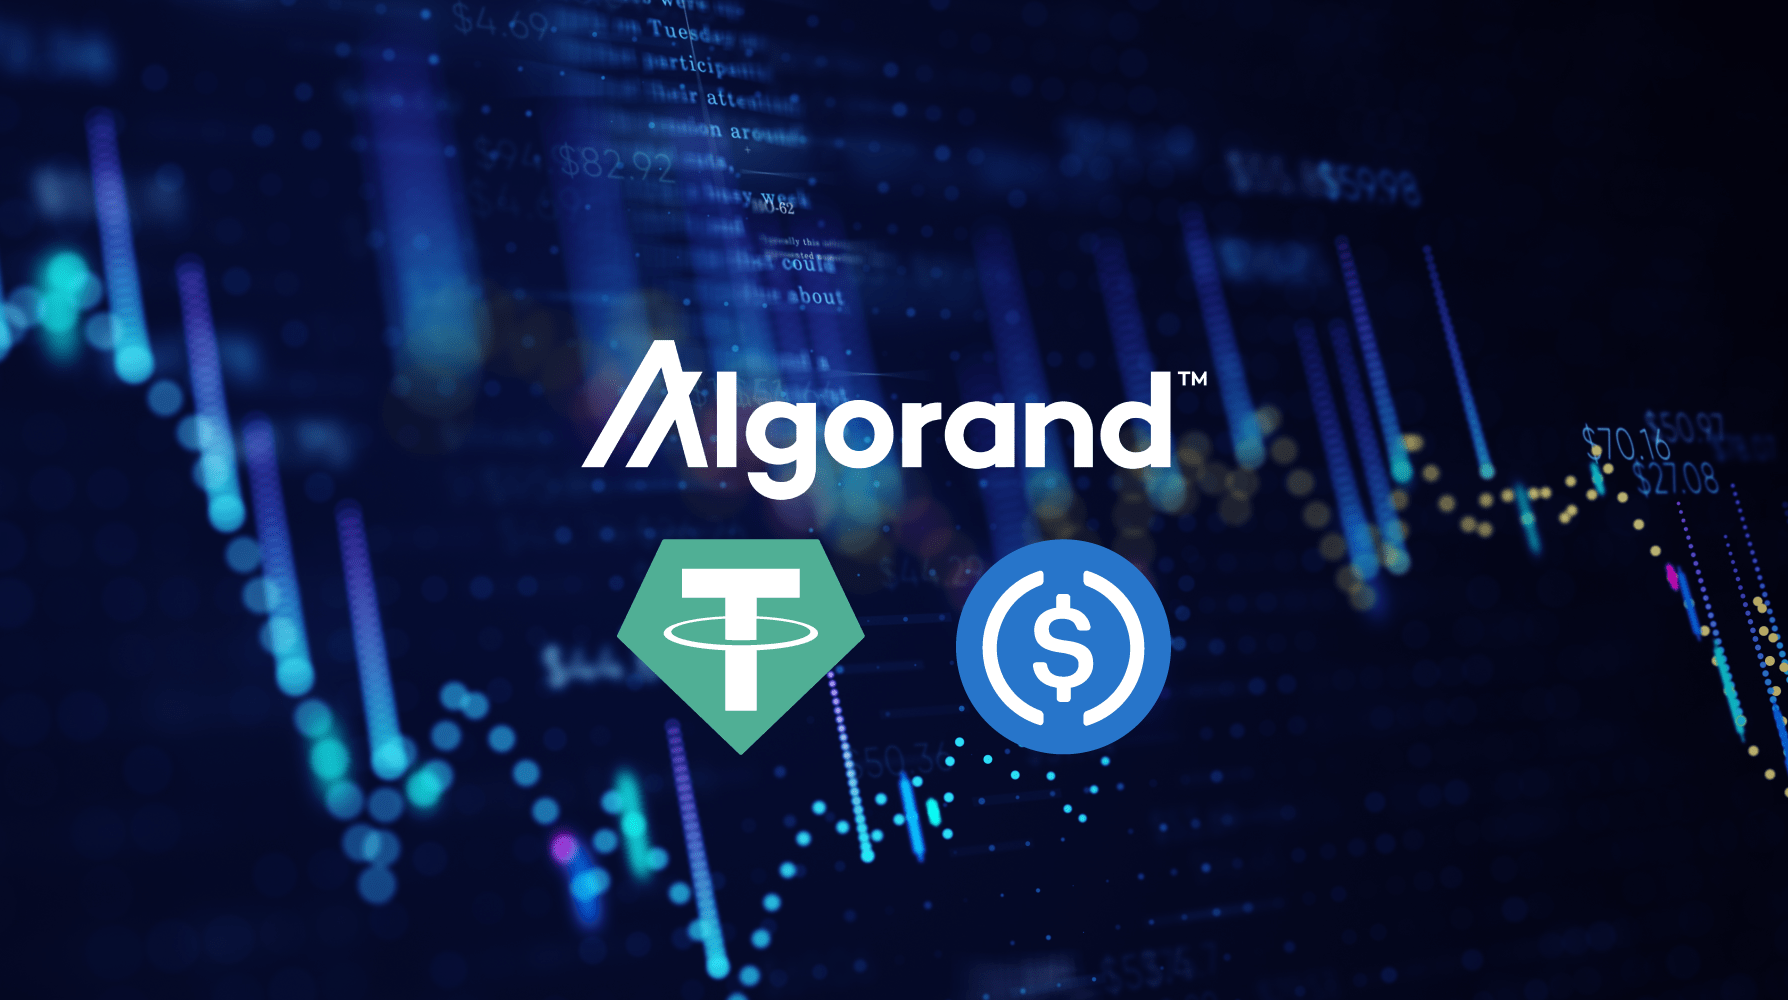 OKEx Announces Support for USDT and USDC Stablecoins on the Algorand Blockchain